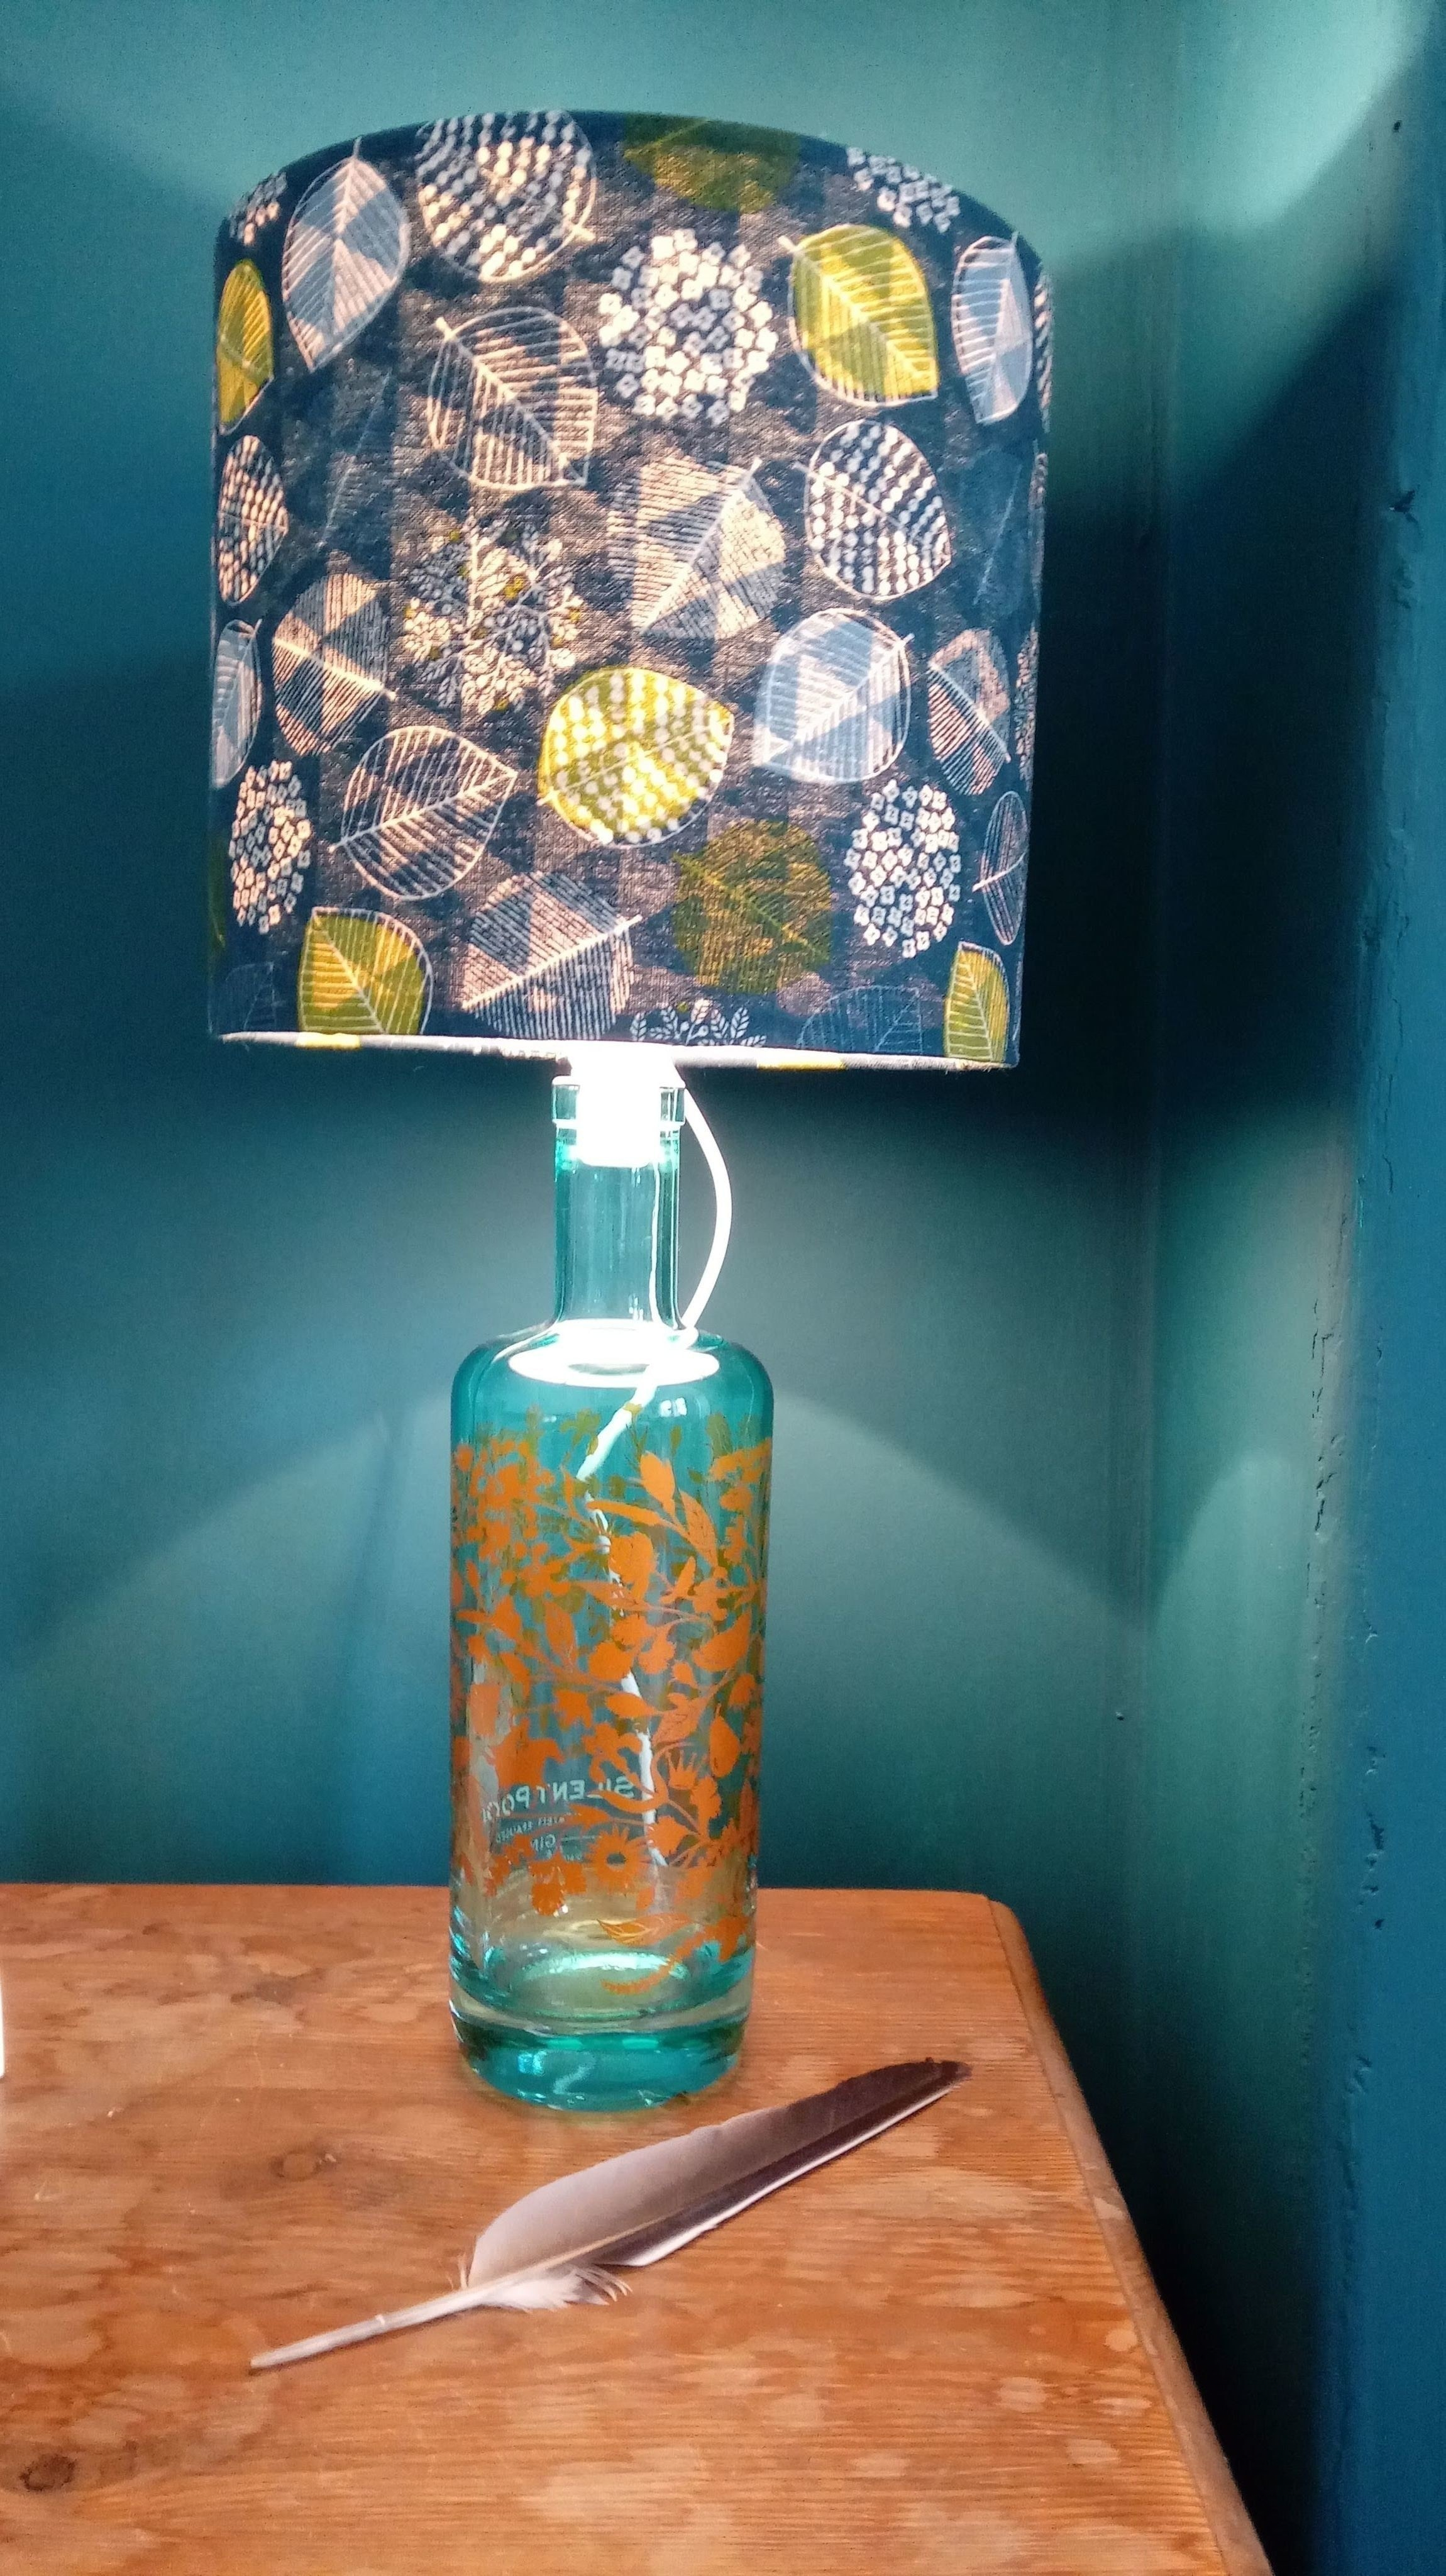 Gin Bottle Lamp 183 A Bottle Lamp 183 Home Diy On Cut Out Keep 183 Creation By Helen W